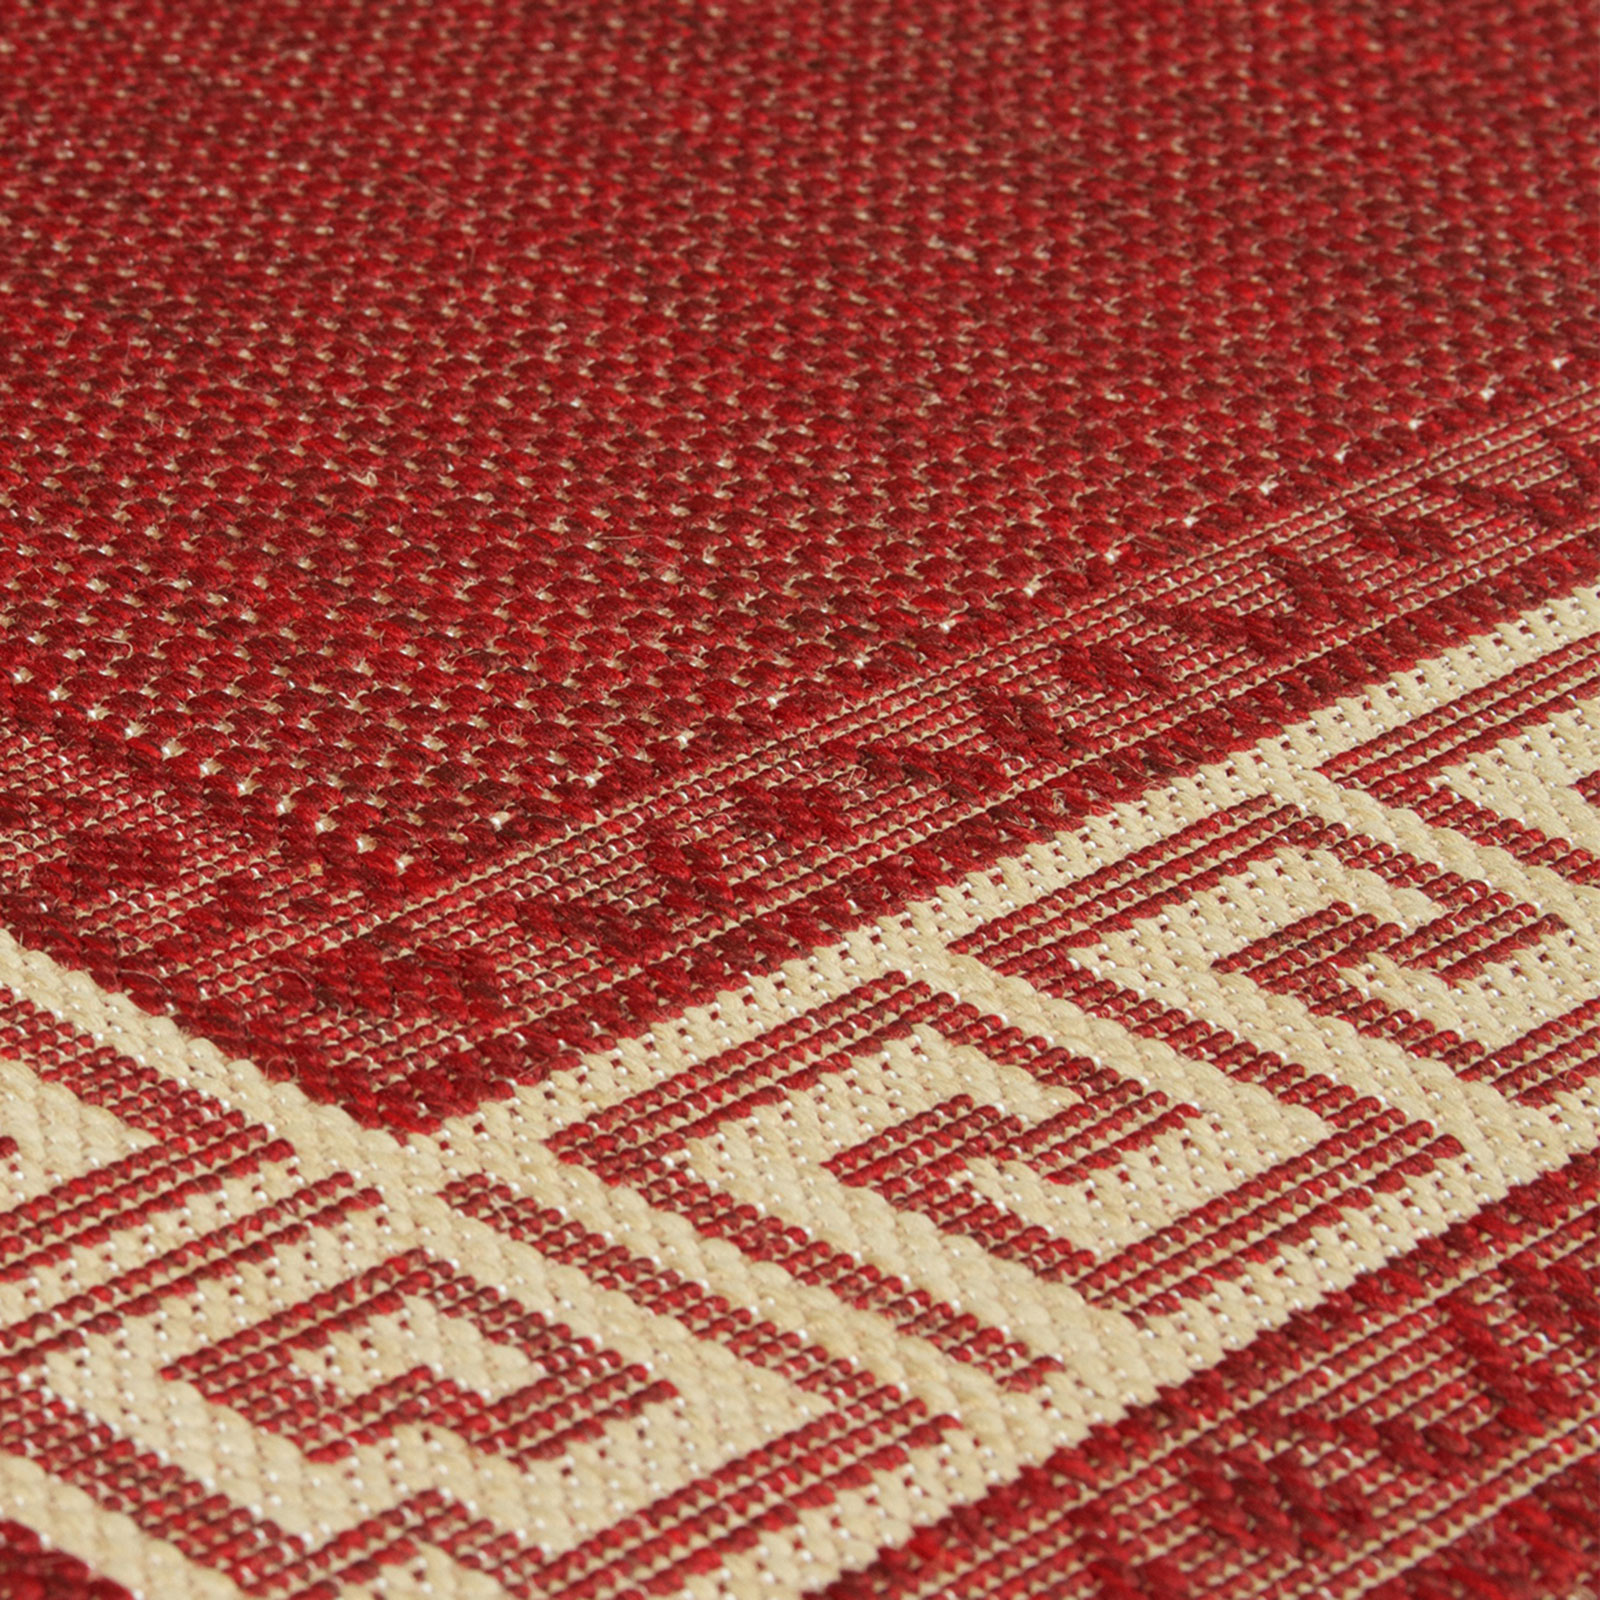 Greek-Key-Flatweave-Red-Detail.jpg